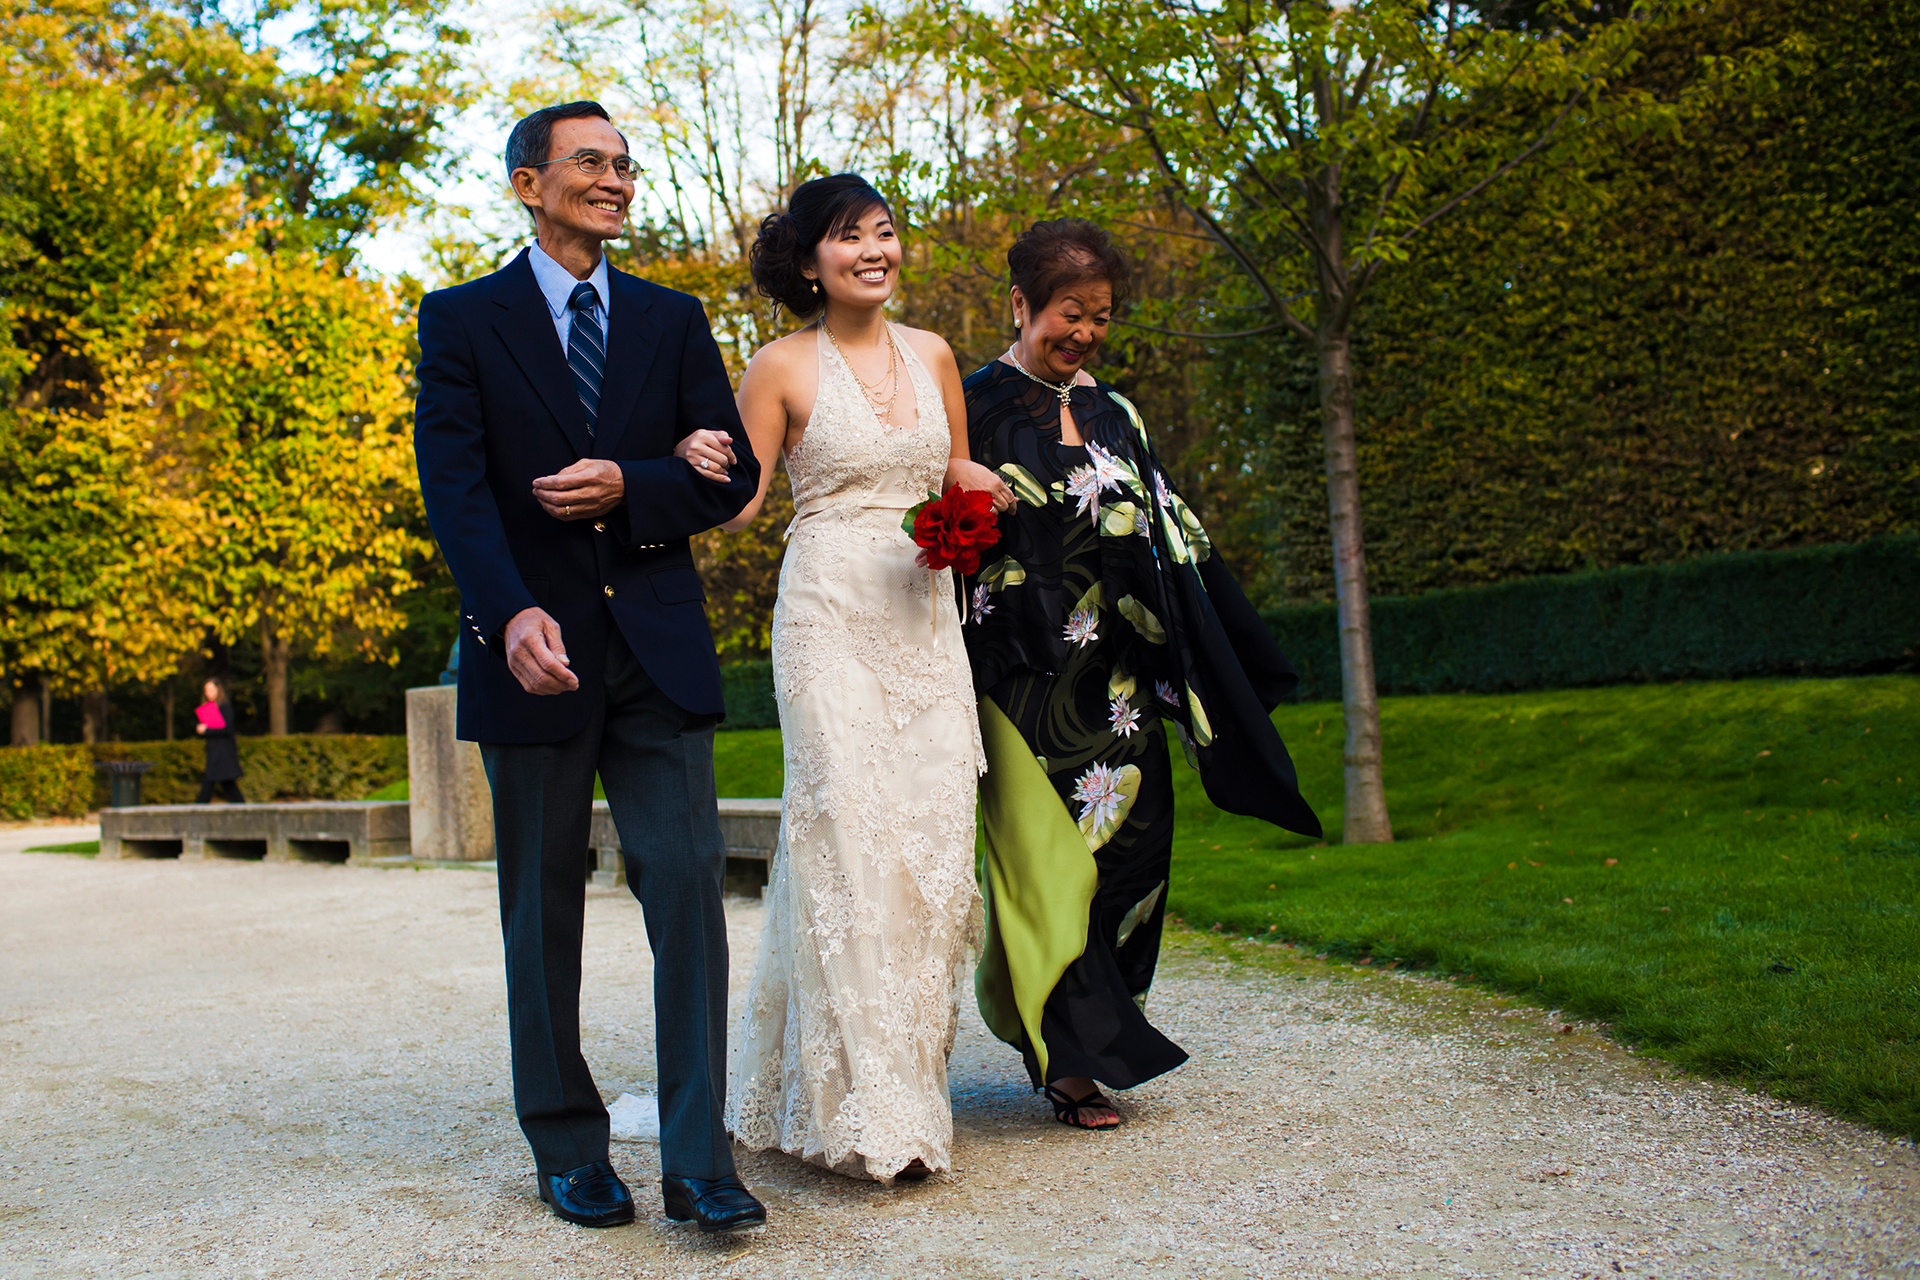 Paris France Elopement Ceremony Picture | The bride, wearing a lace gown, walks down a gravel path through greenery toward the ceremony